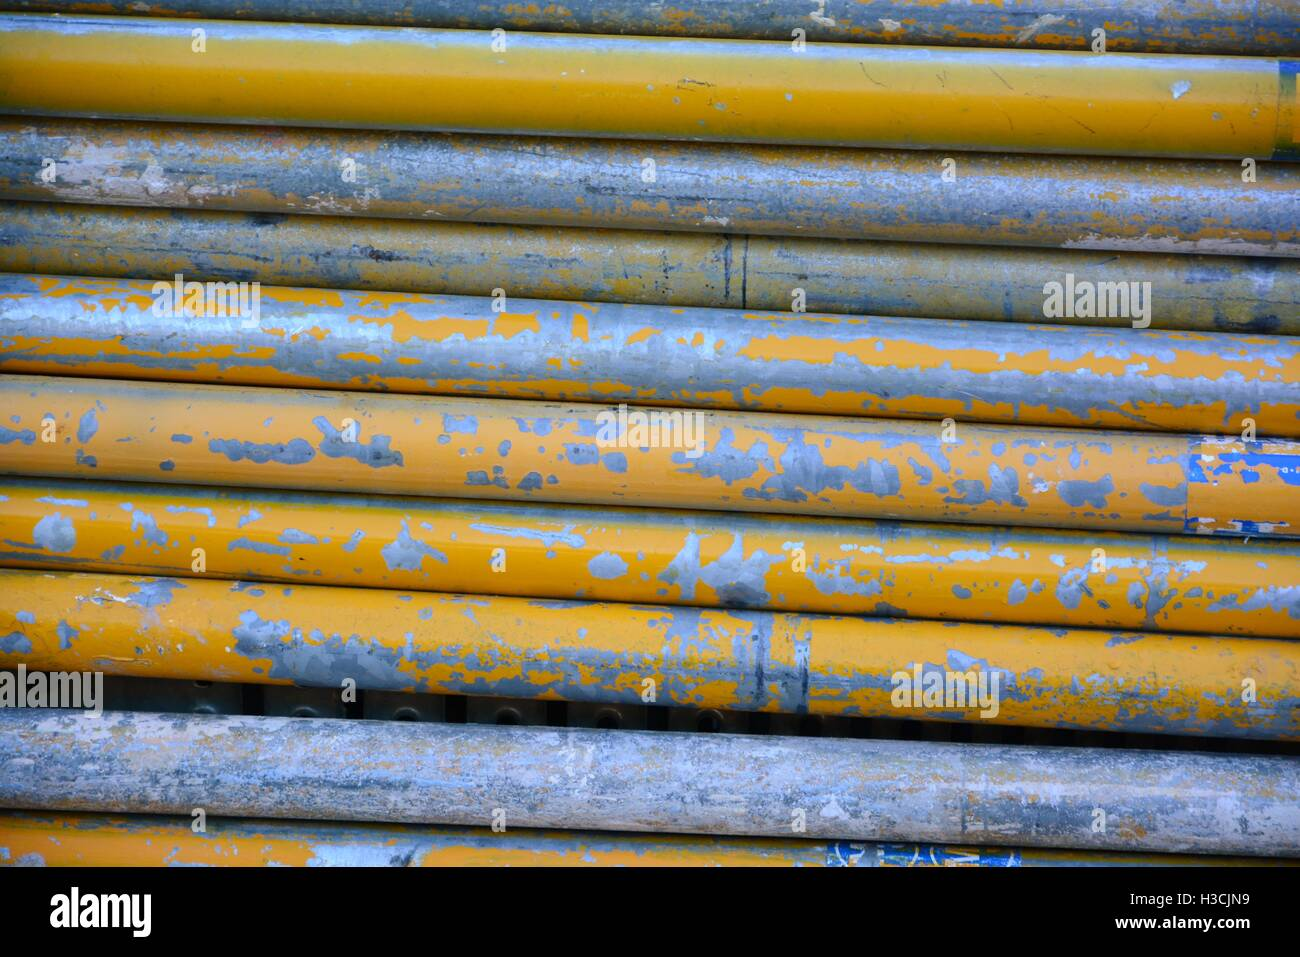 Grunge Pipes Stock Photos Amp Grunge Pipes Stock Images Alamy